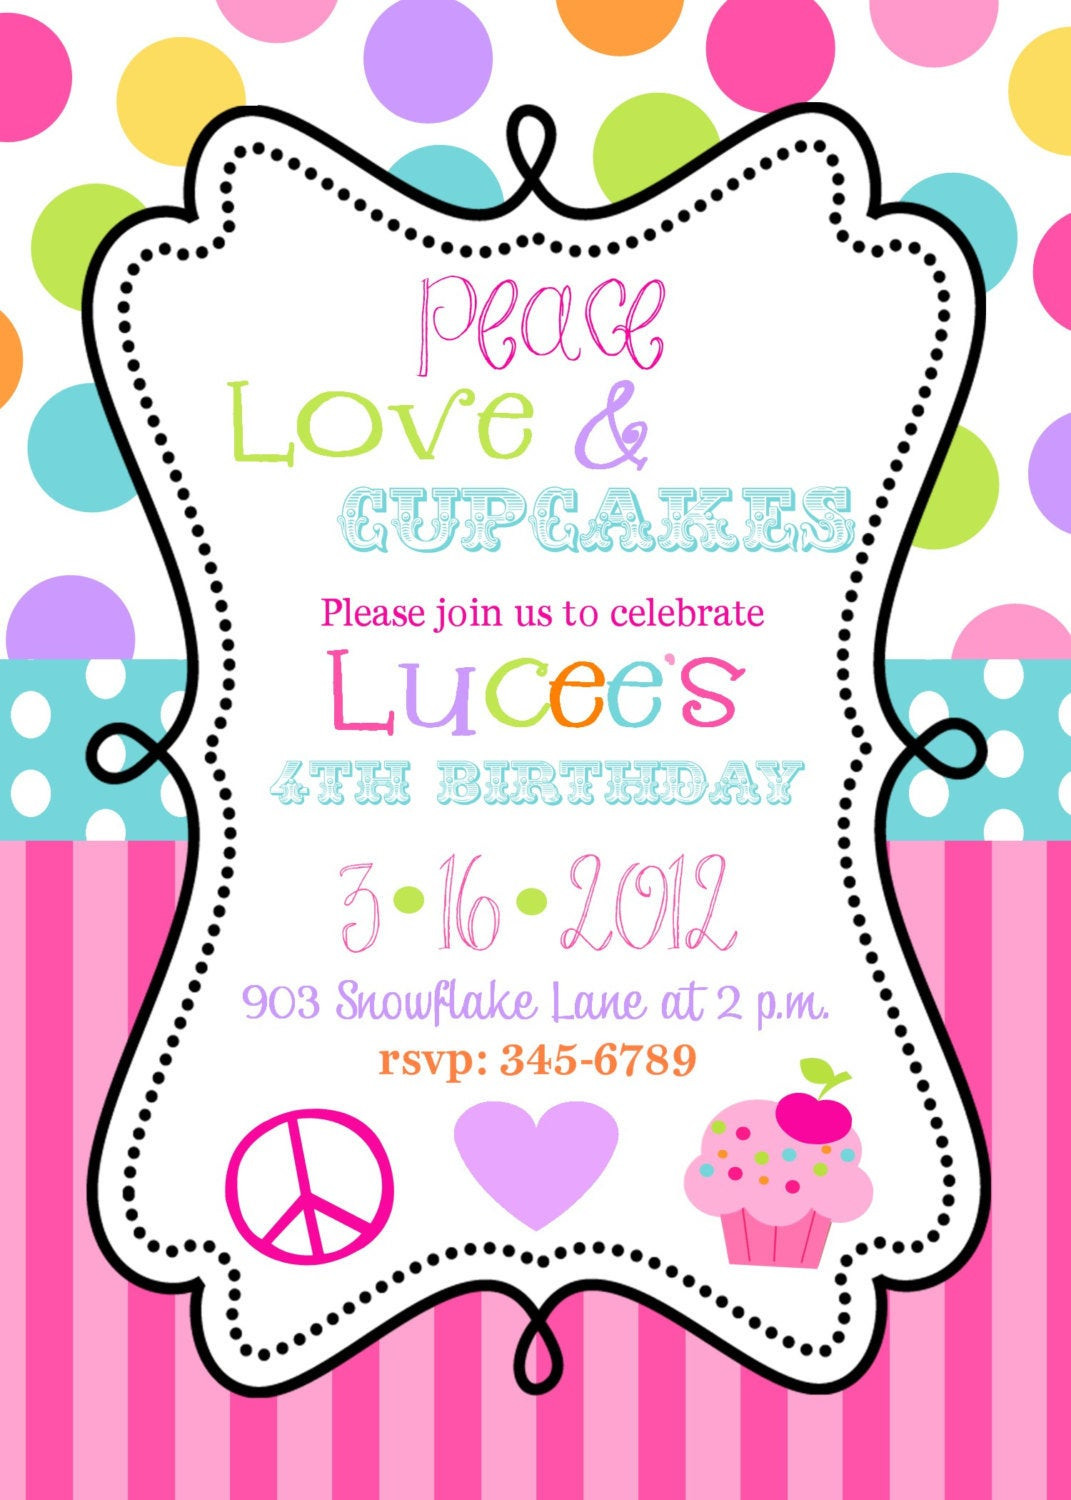 Cupcake Birthday Invitations  12 Peace Love Cupcakes Birthhday Party invitations with